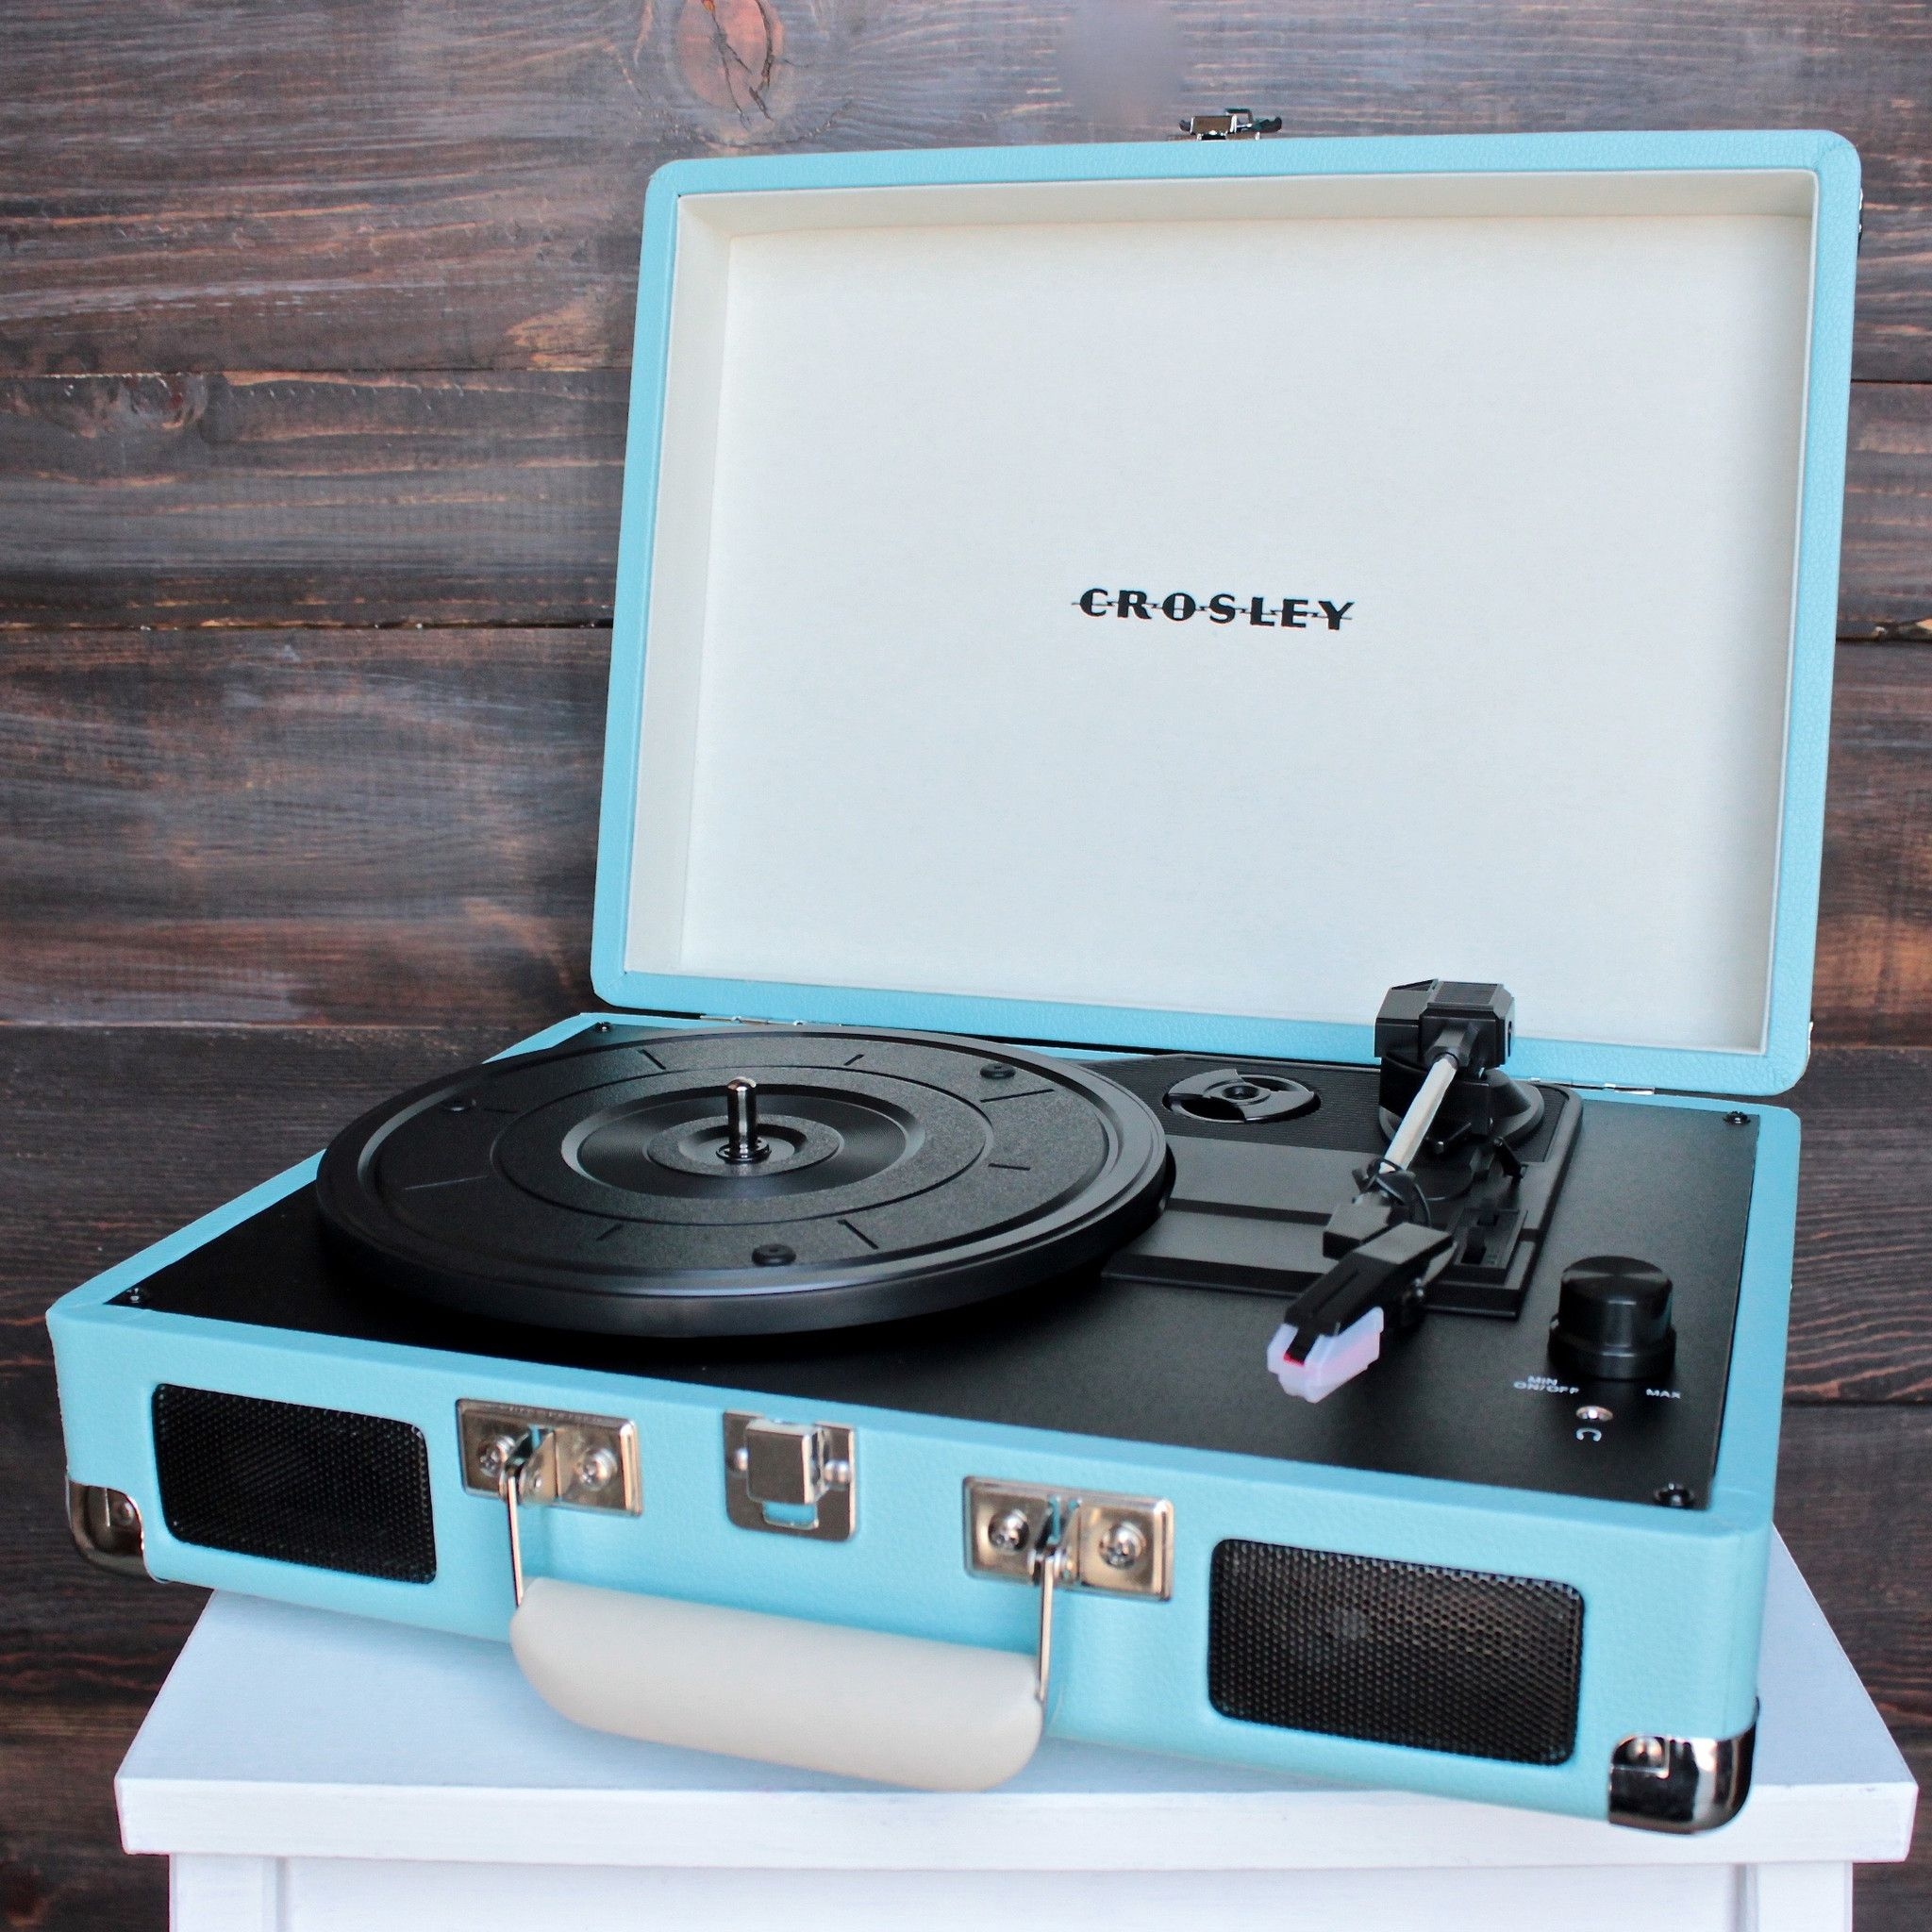 crosley cruiser portable turntable in turquoise my style turntable vinyl record player. Black Bedroom Furniture Sets. Home Design Ideas